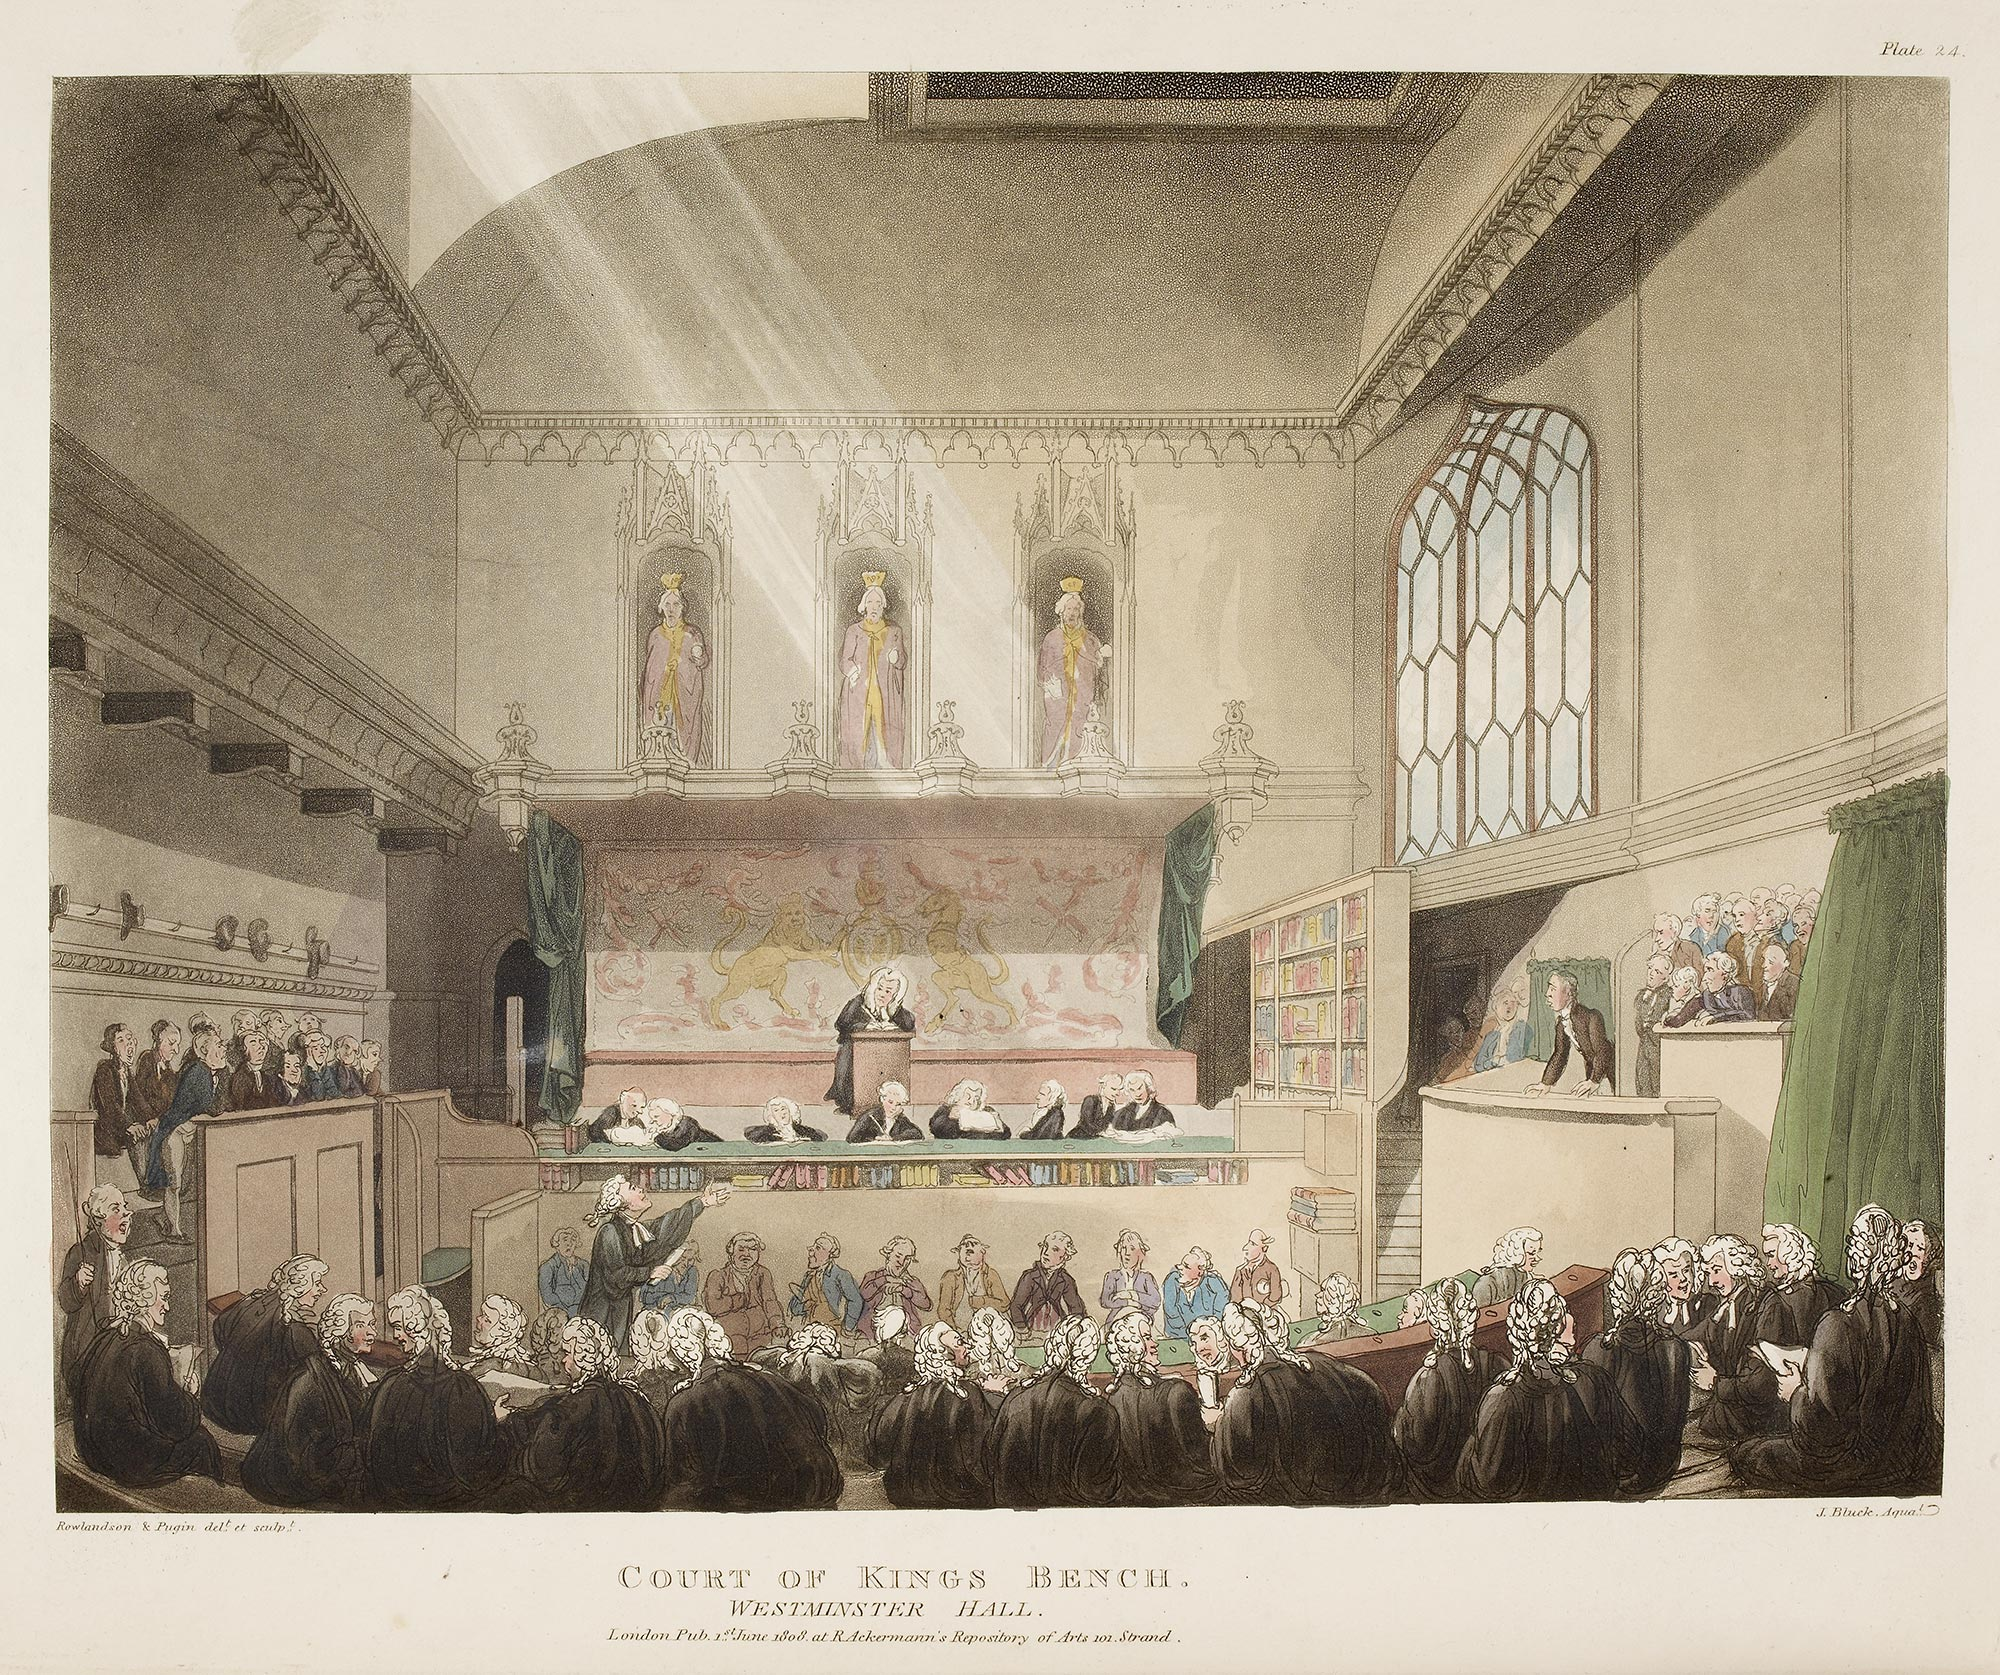 Illustration of a trial at the Court of King's Bench